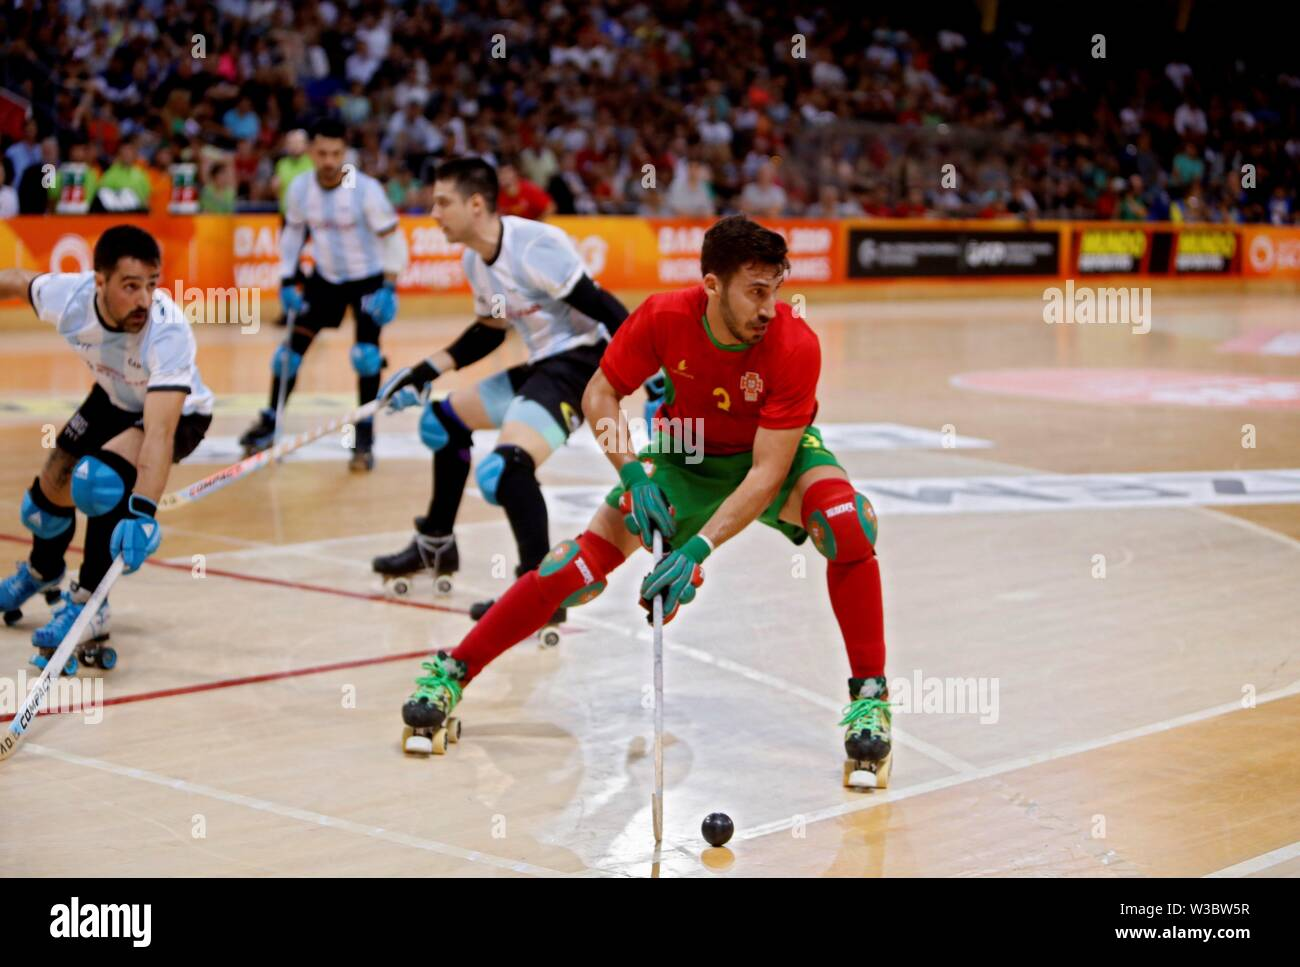 Barcelona, Spain. 14th July, 2019. ***CORRECTS THE MATCH: THIS IS THE FINAL GAME**Portuguese National Roller Hockey Team's player Jose Rafael Costa (C) controls the ball against Argentina during men's roller hockey third-place play-off as part of World Roller Games in Barcelona, Spain, 14 July 2019. Credit: Toni Albir/EFE/Alamy Live News - Stock Image